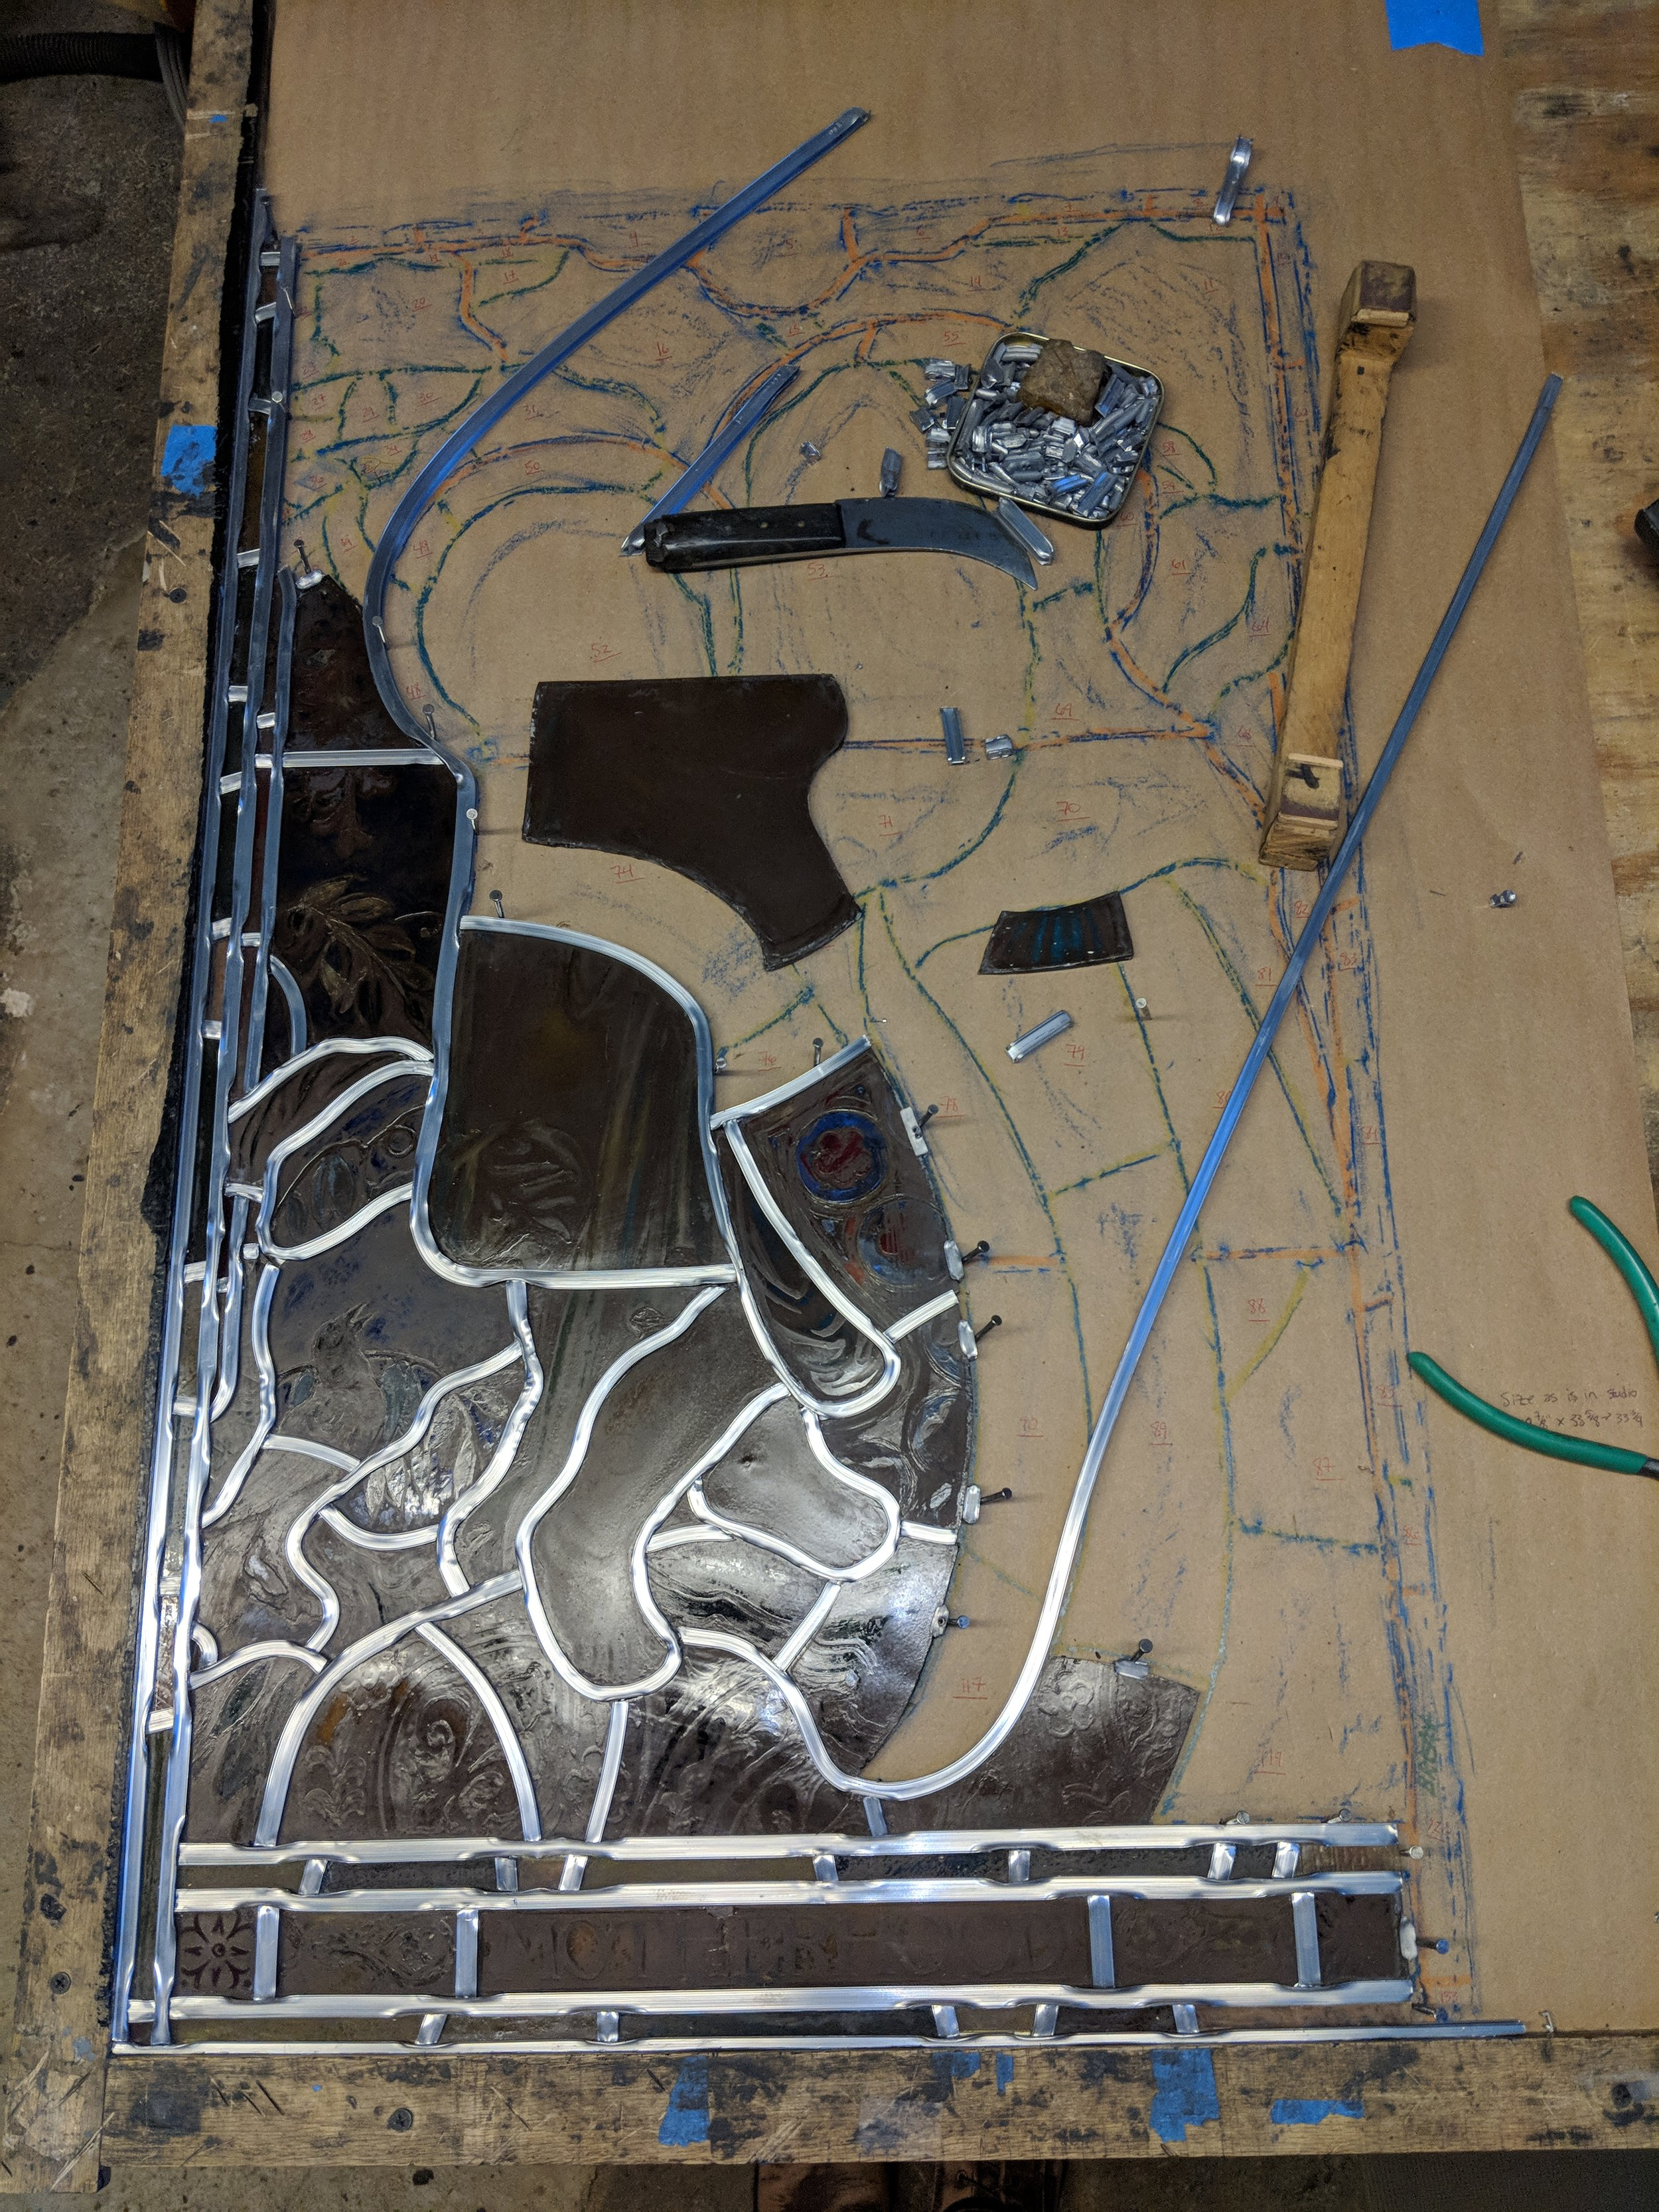 Once all pieces have been repaired or replaced, the panel is reassembled with new lead according to the pattern made at the beginning.